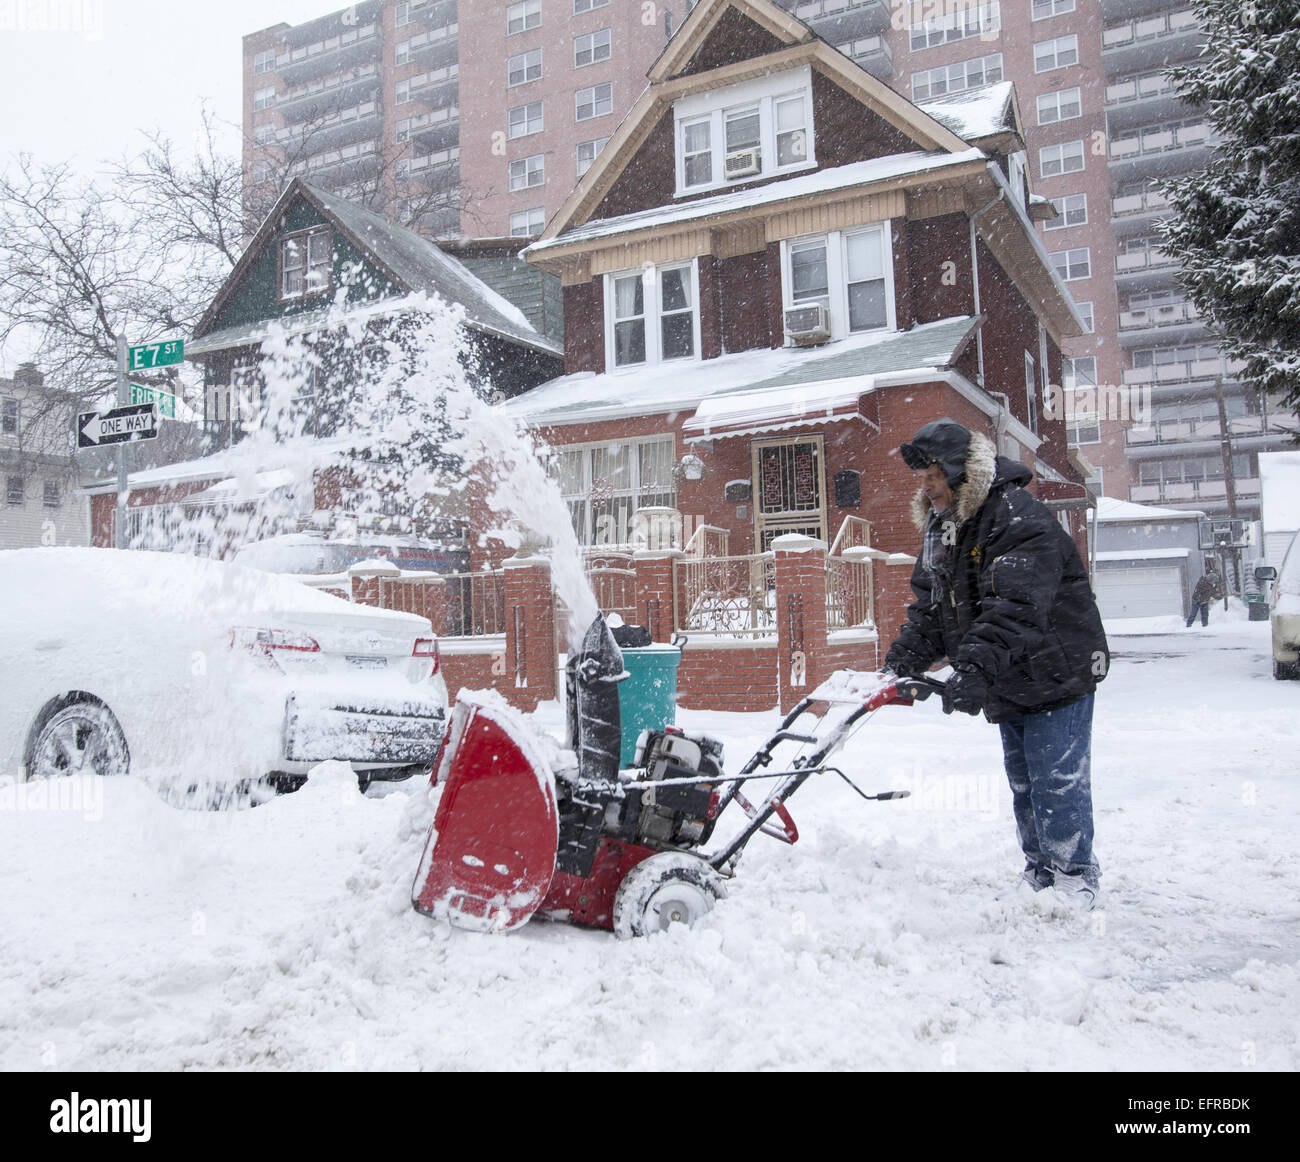 Man uses a snow blower after a heavy snow in the Kensington section of Brooklyn, NY. - Stock Image